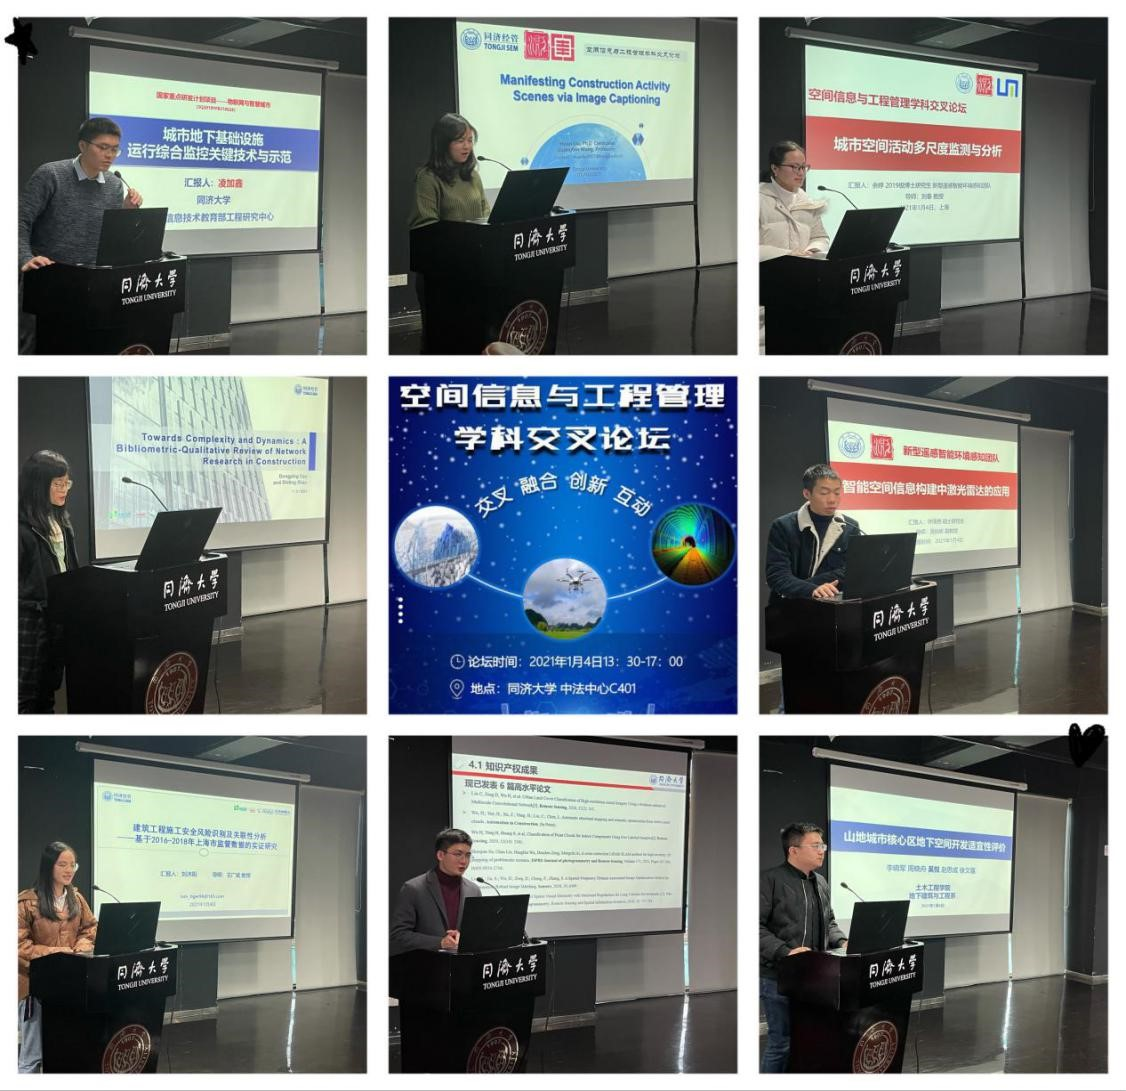 A Cross-Disciplinary Forum on Spatial Information and Engineering Management Jointly Held by Three Colleges of Tongji University